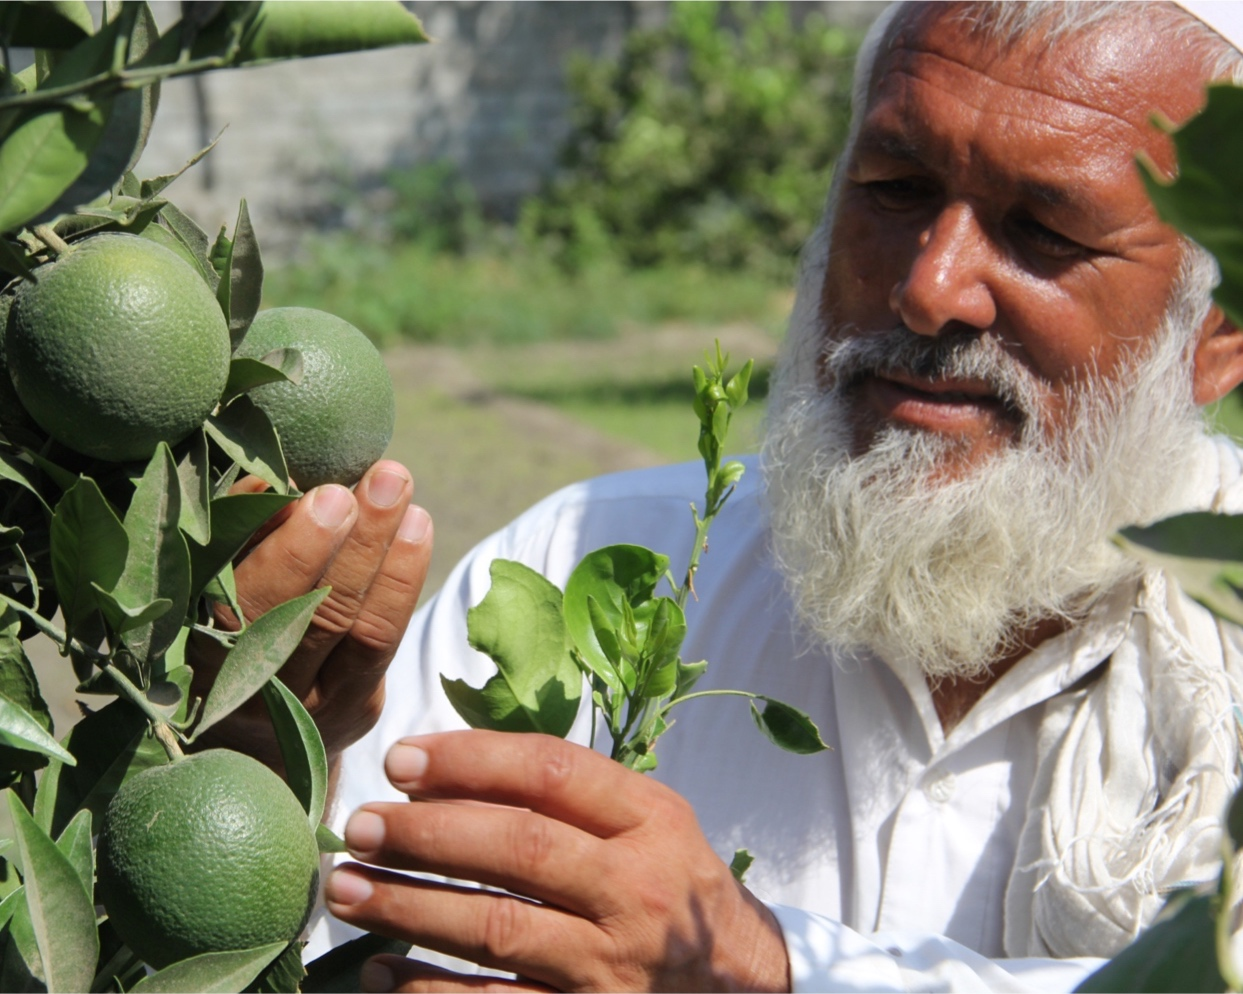 Roots-of-Peace-ROP-agriculture-citrus-farmer-lime-Afghanistan.jpg